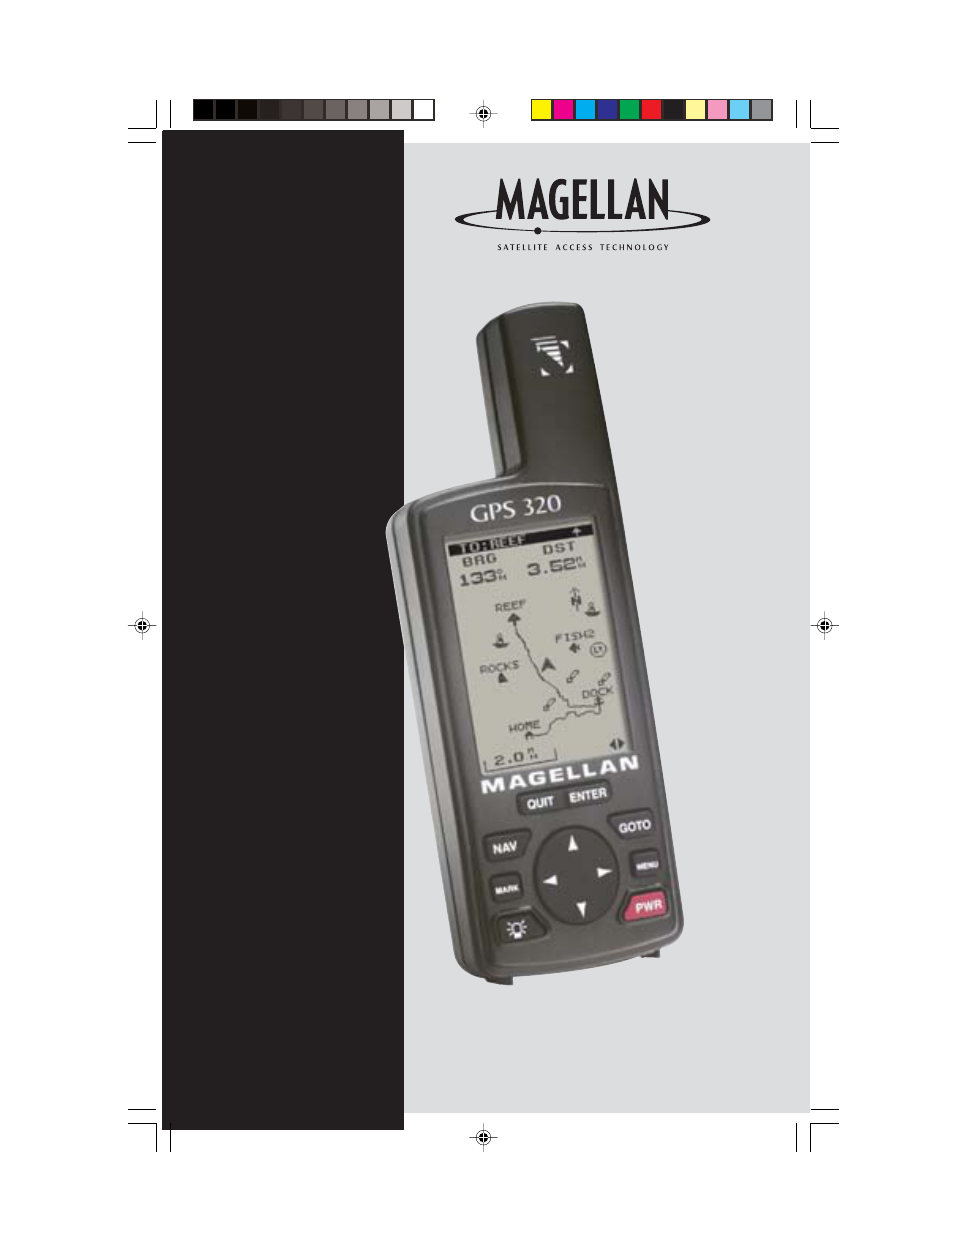 magellan 4250 owners manual professional user manual ebooks u2022 rh justusermanual today 4250s EGS magellan maestro 4250 user manual pdf